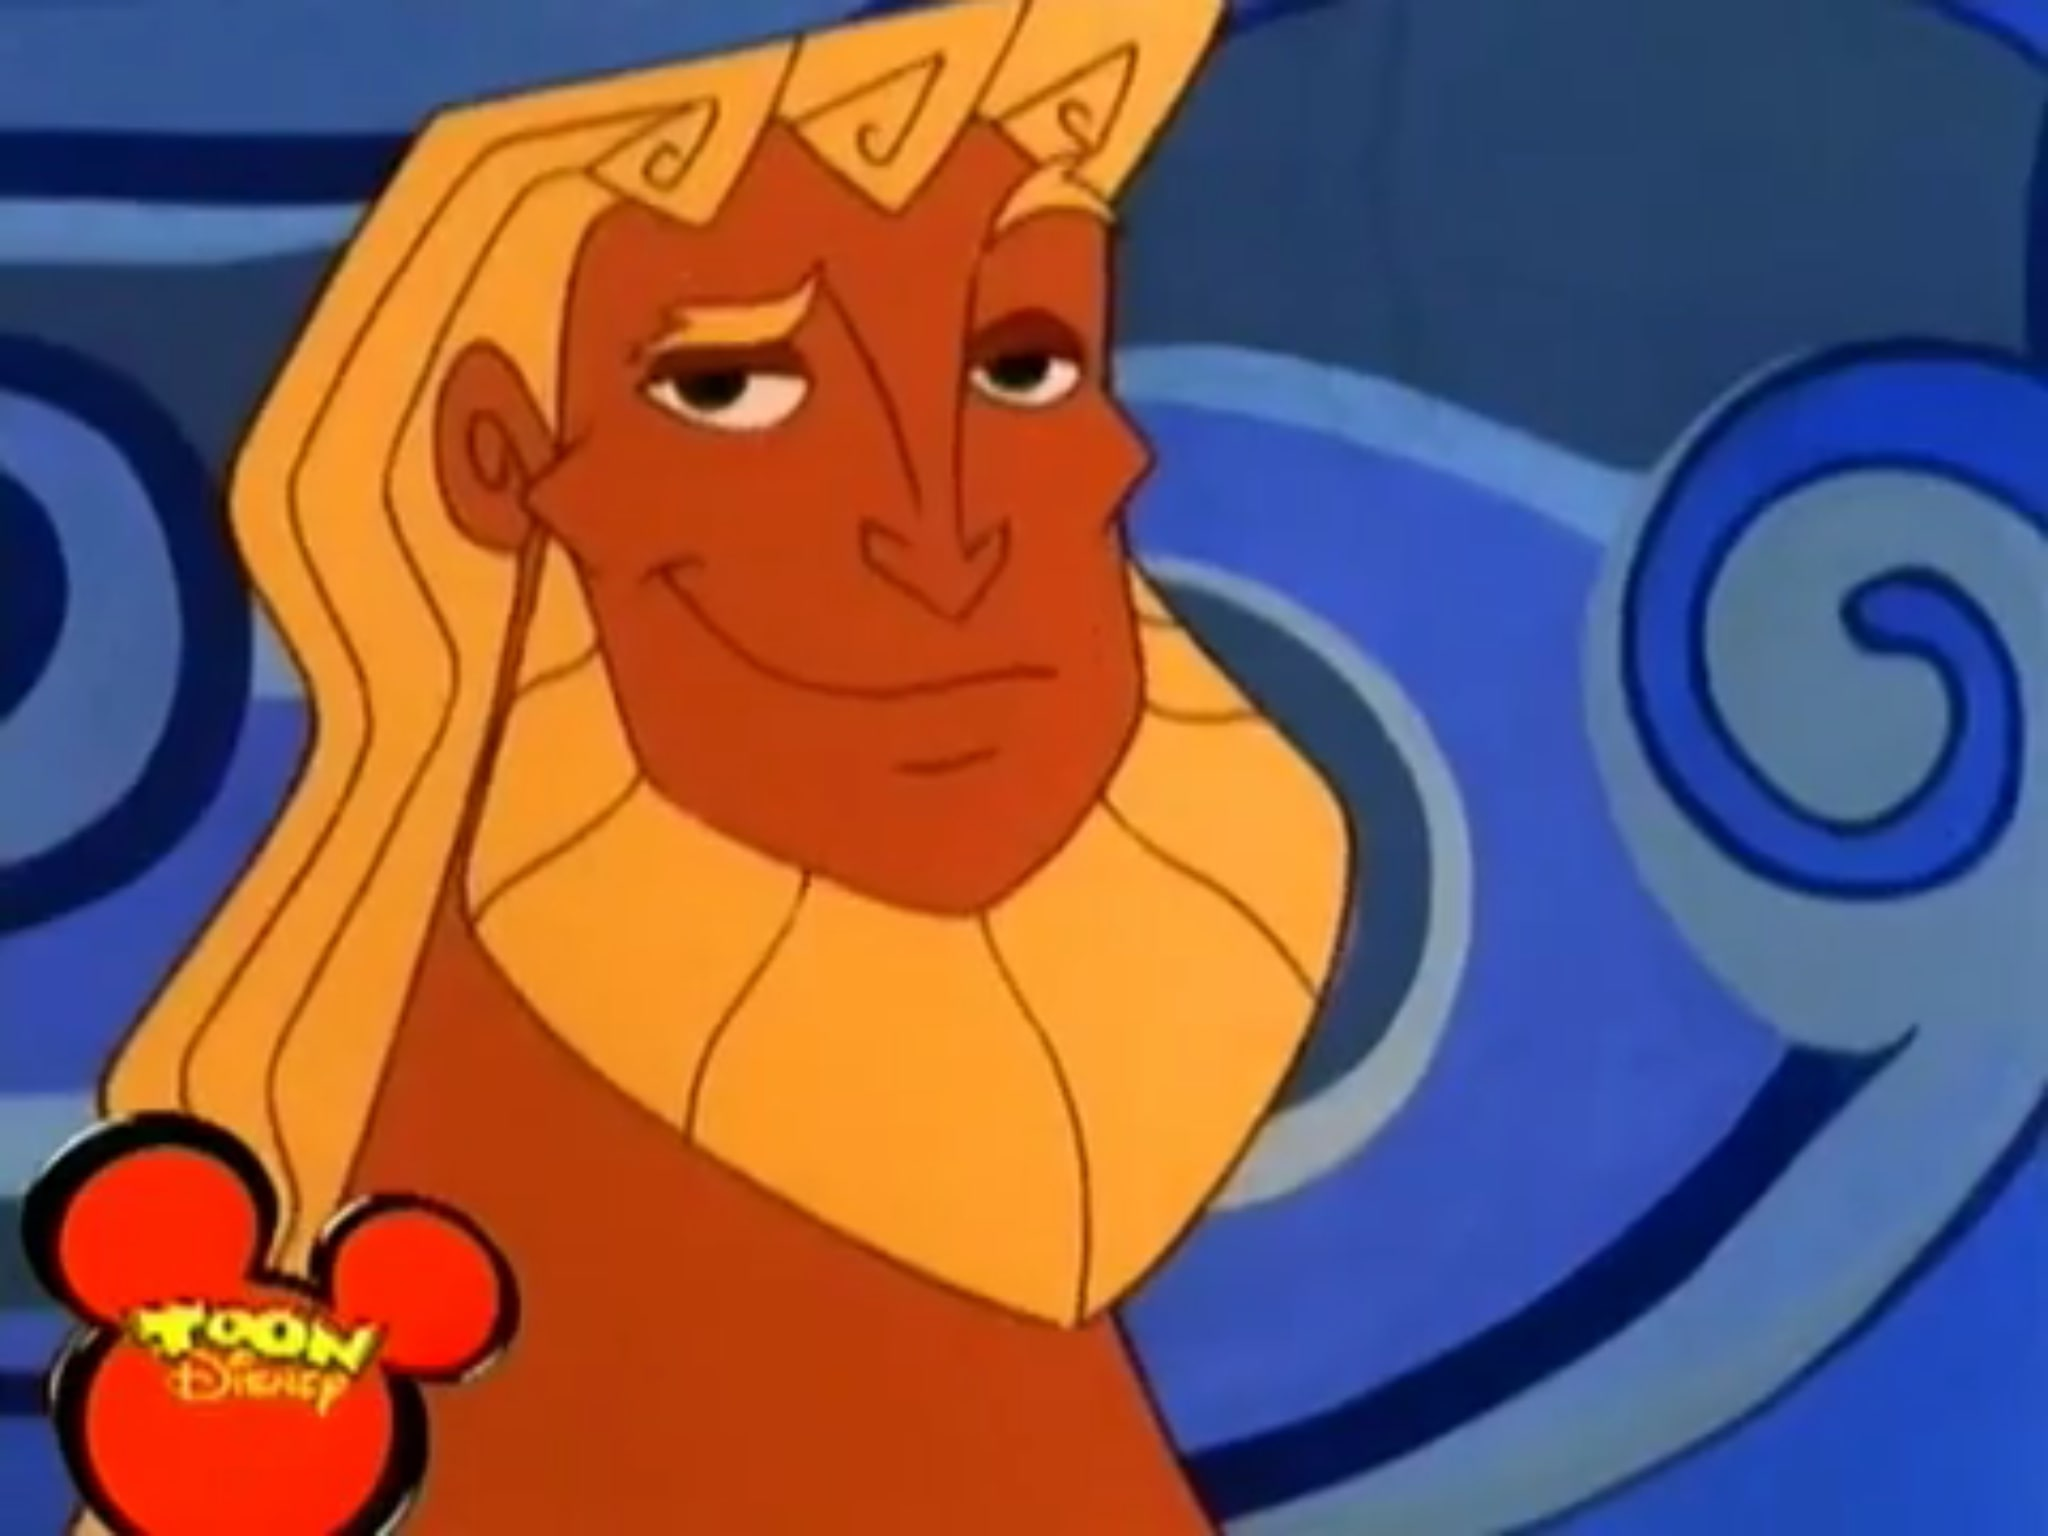 File:Prometheus disney.jpg